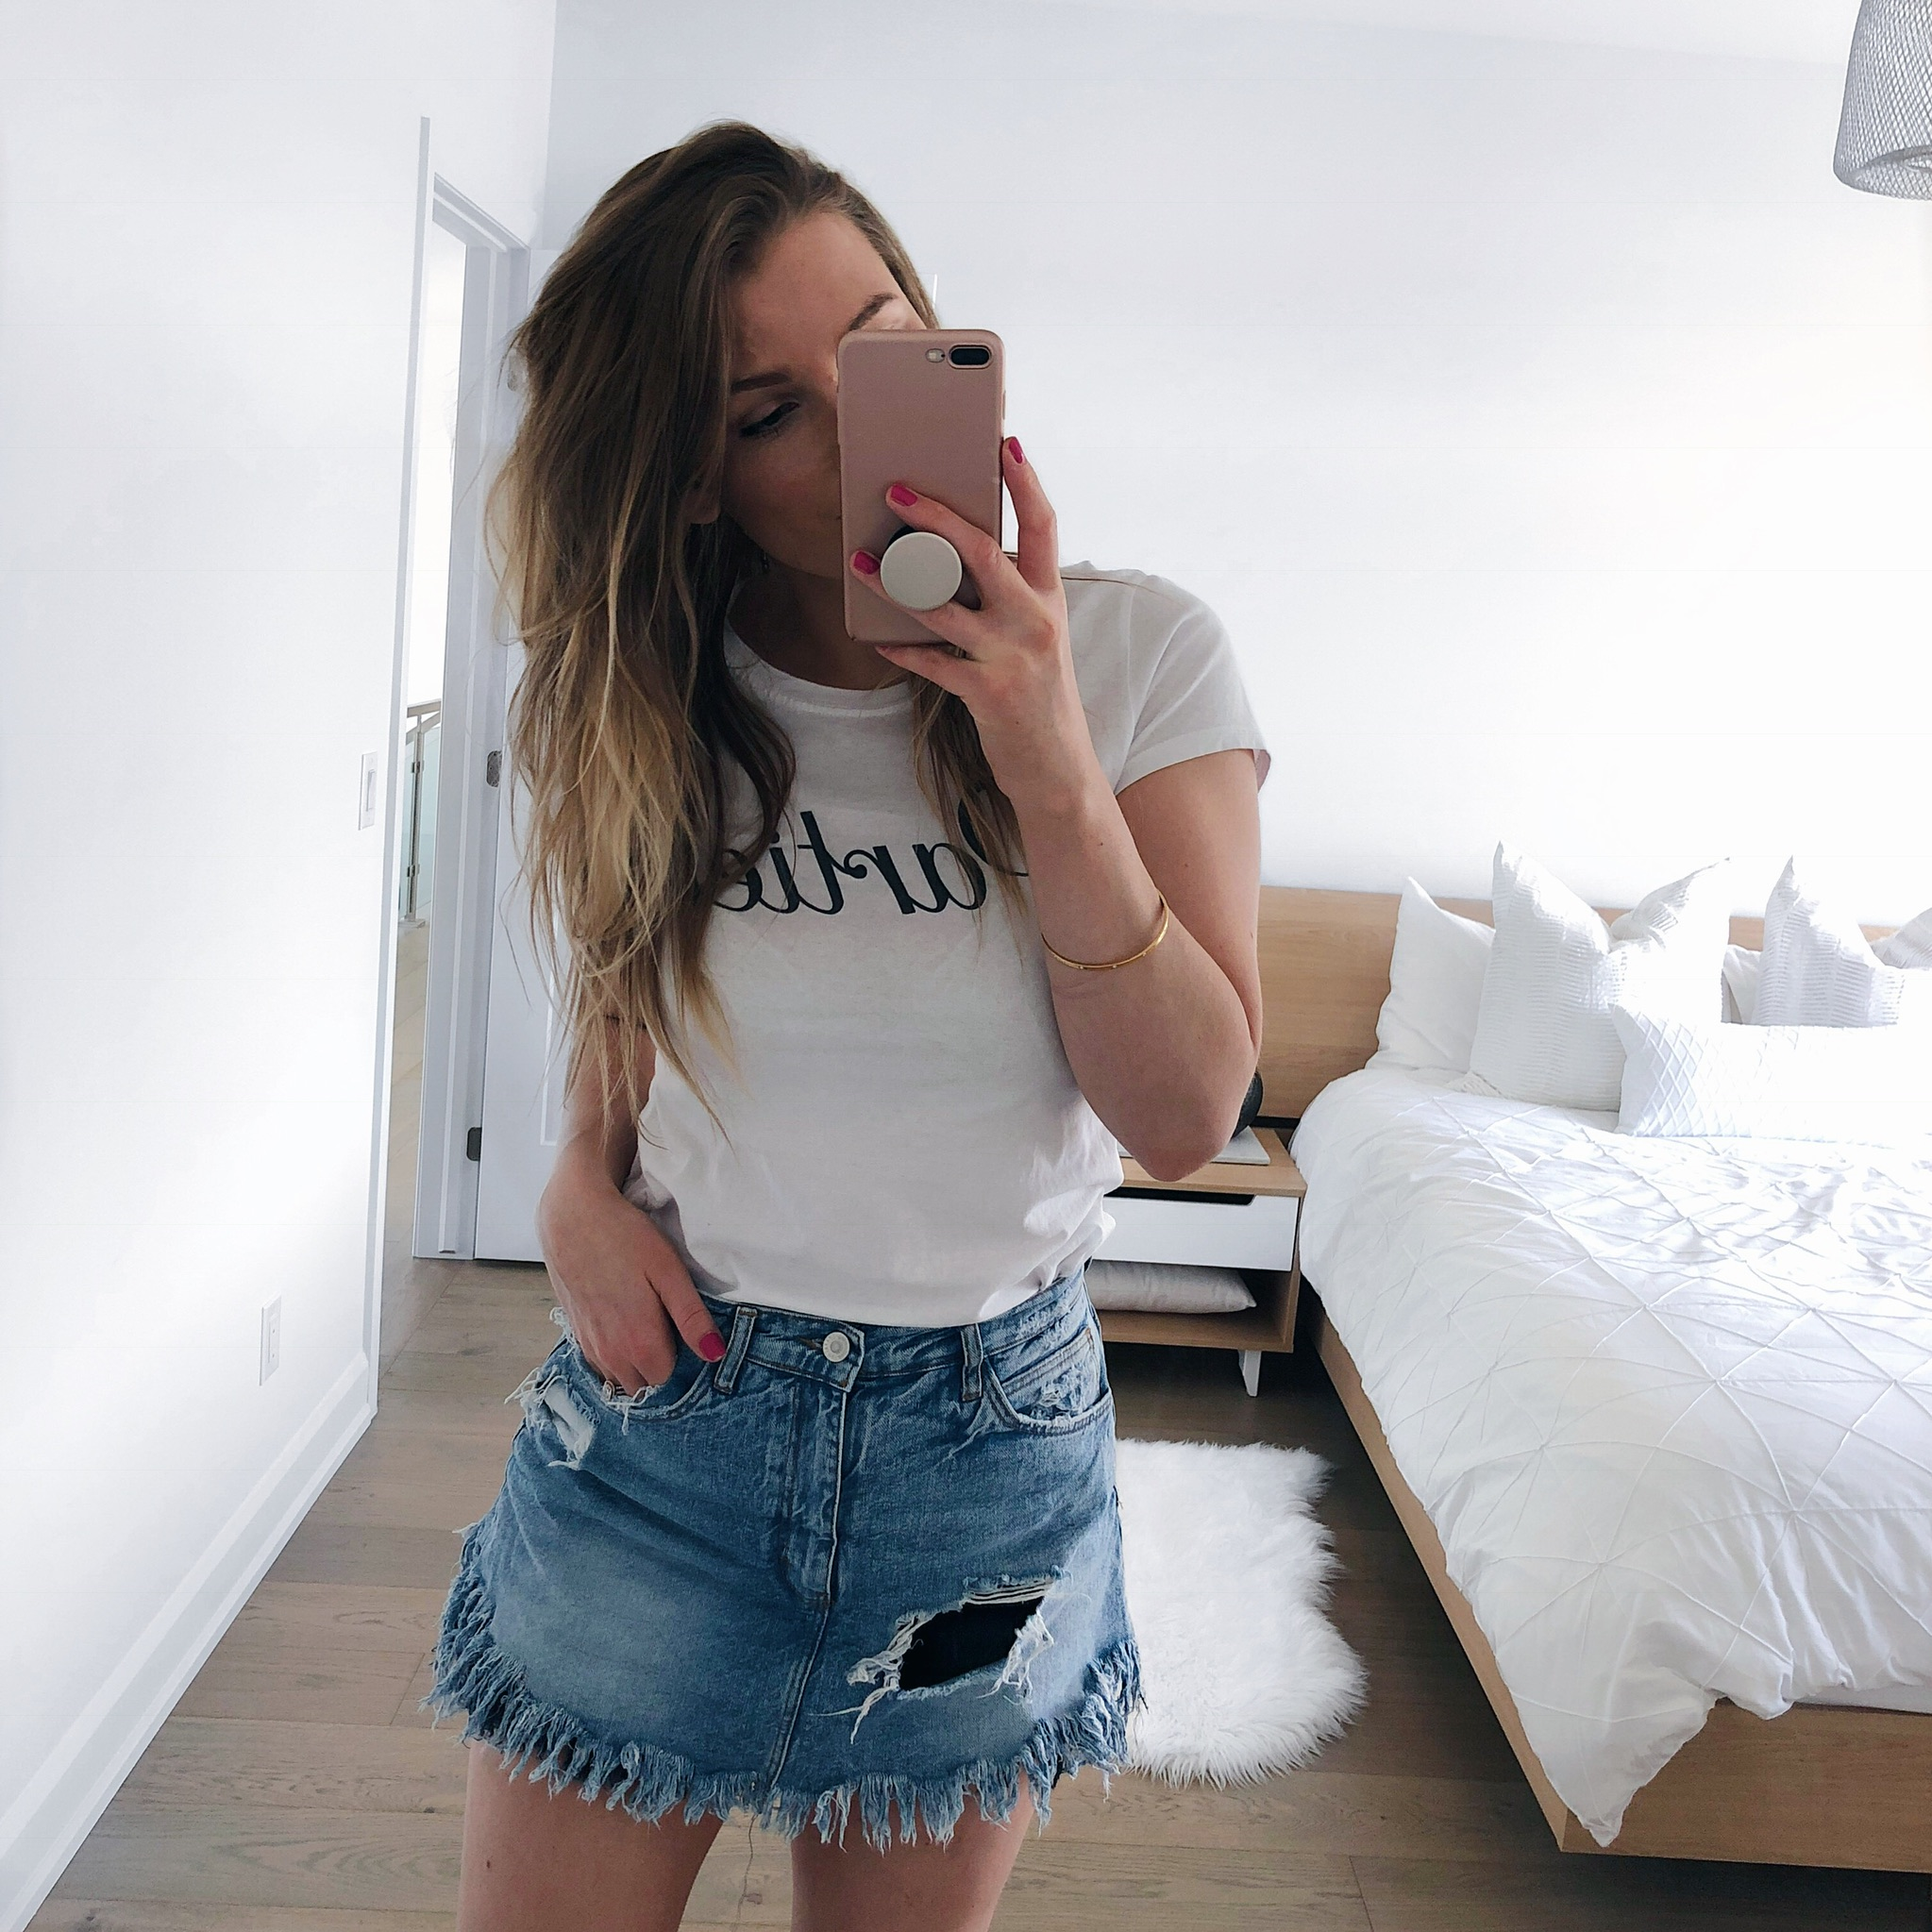 1 person, mirror selfie, denim skirt and graphic tee